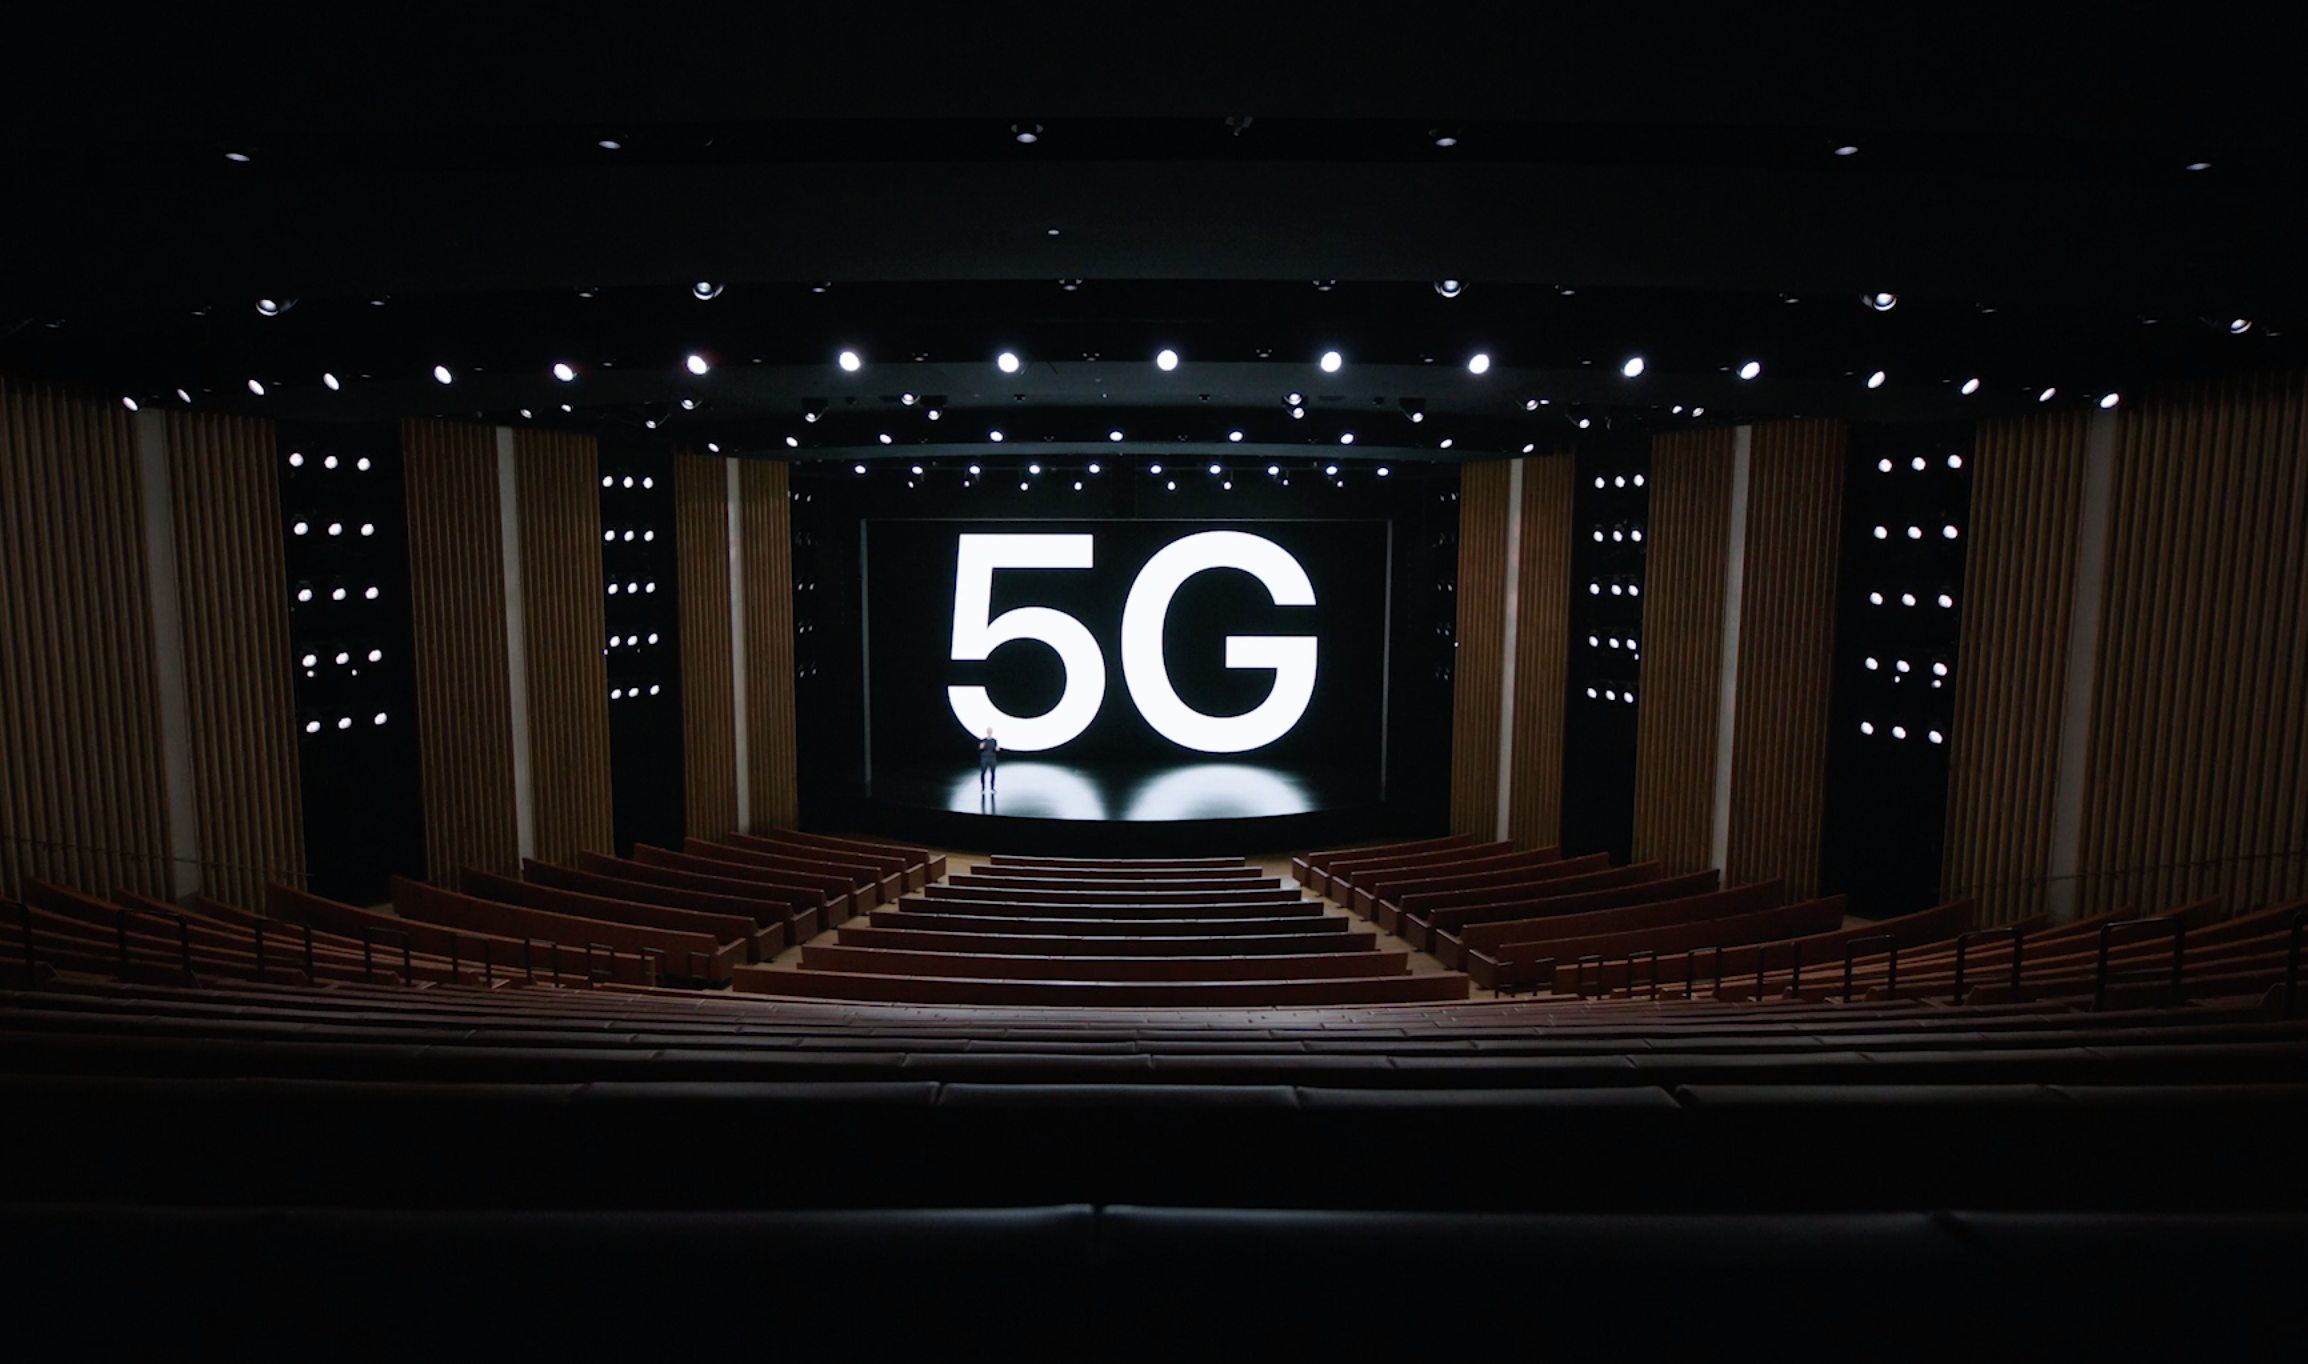 Apple 'Hi, Speed' Event: 5G, A14 Bionic Chip, and LiDAR for New iPhones